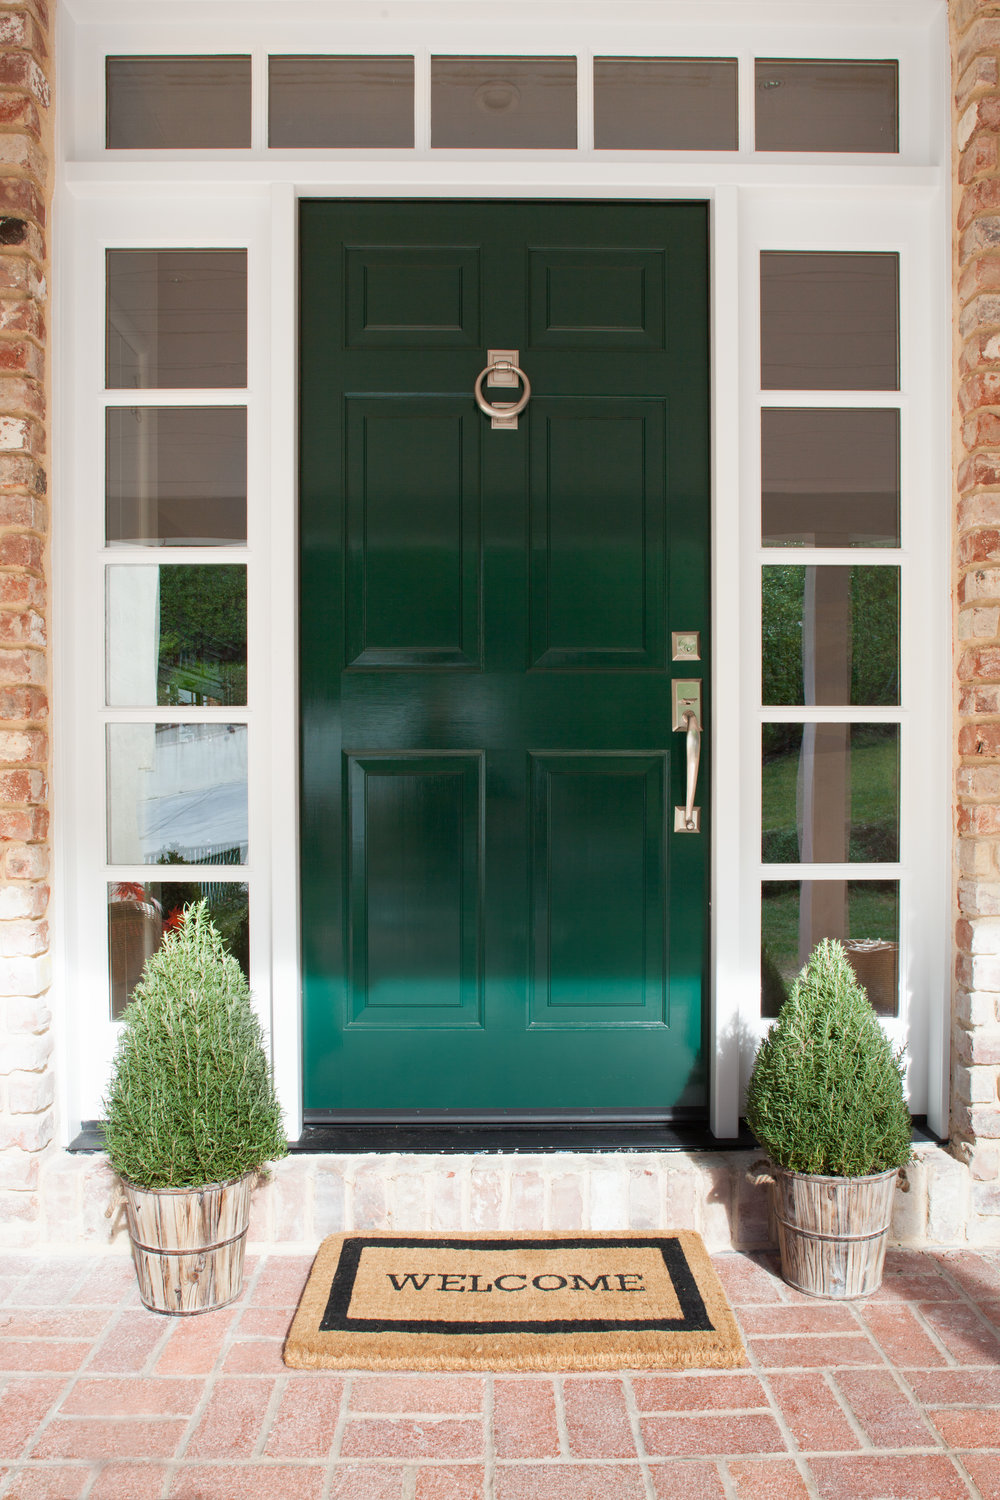 megan bachmann interiors green front door.jpg